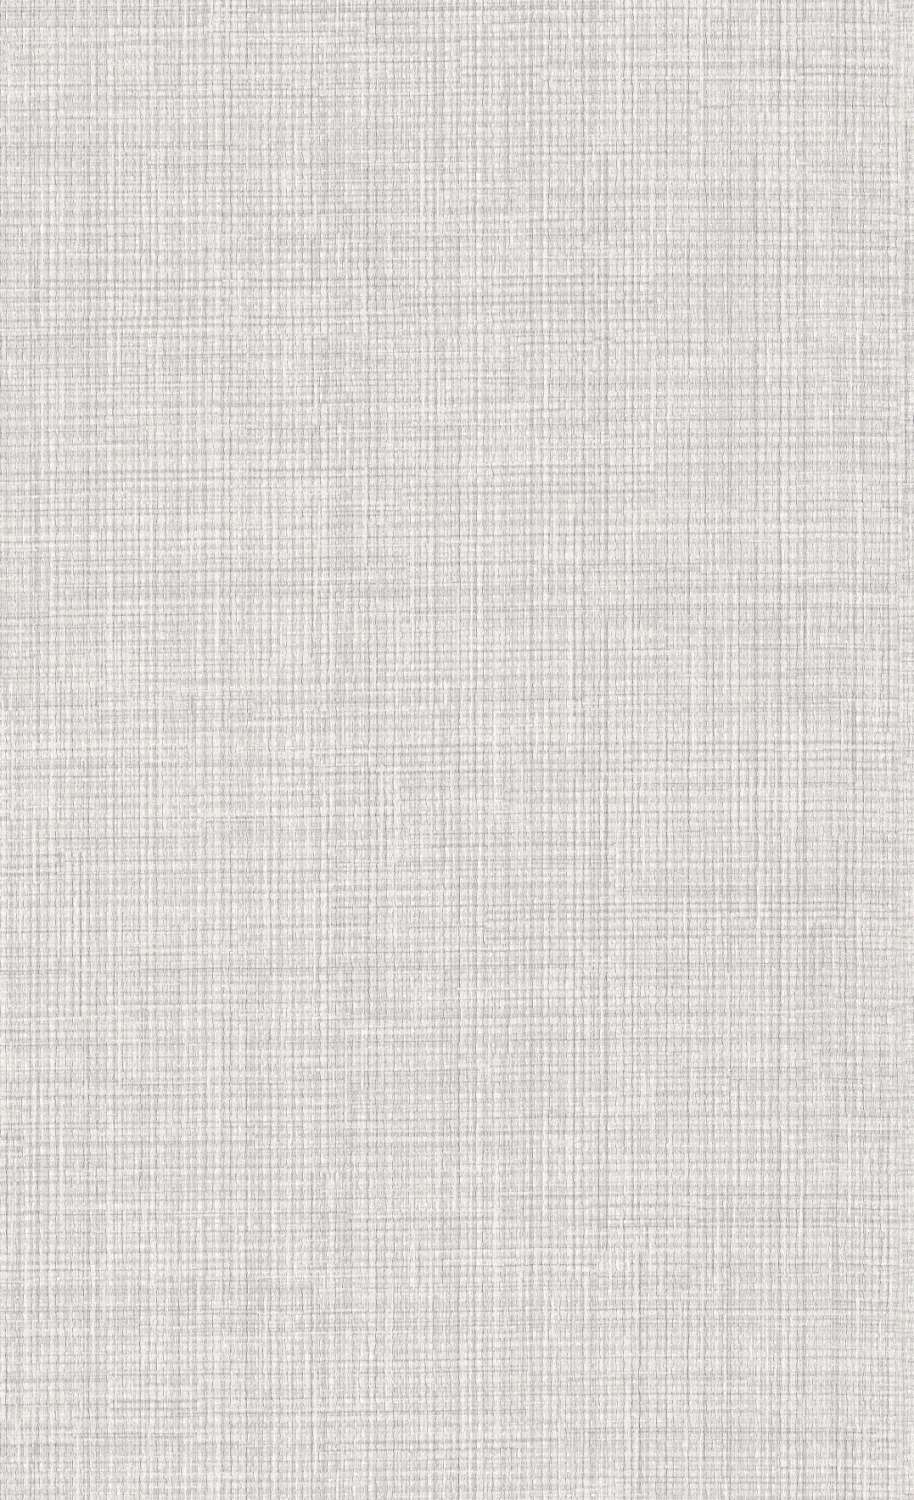 Grey Linear Textured Commercial Wallpaper C7354 | Hospitality & Hotel